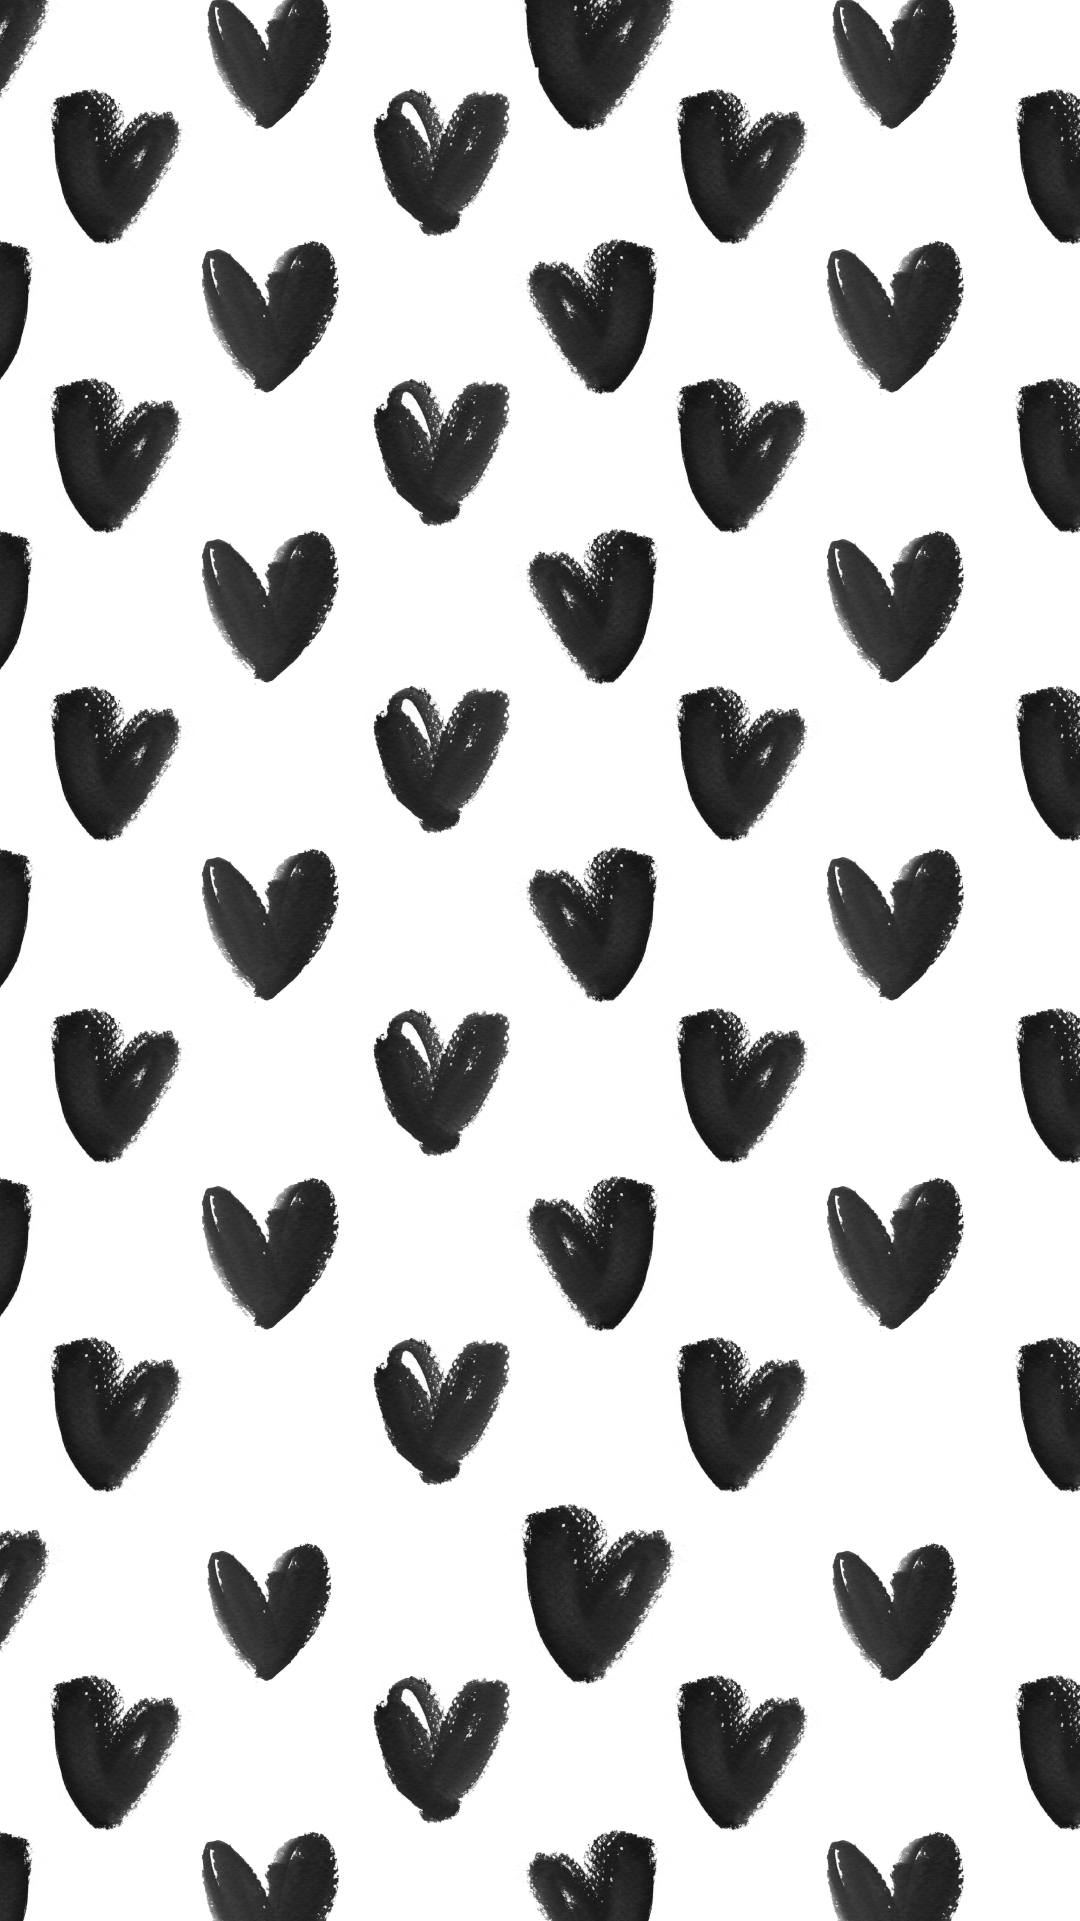 Black-white-heart-pattern-monochrome-print-design-wallpaper-wp4804707